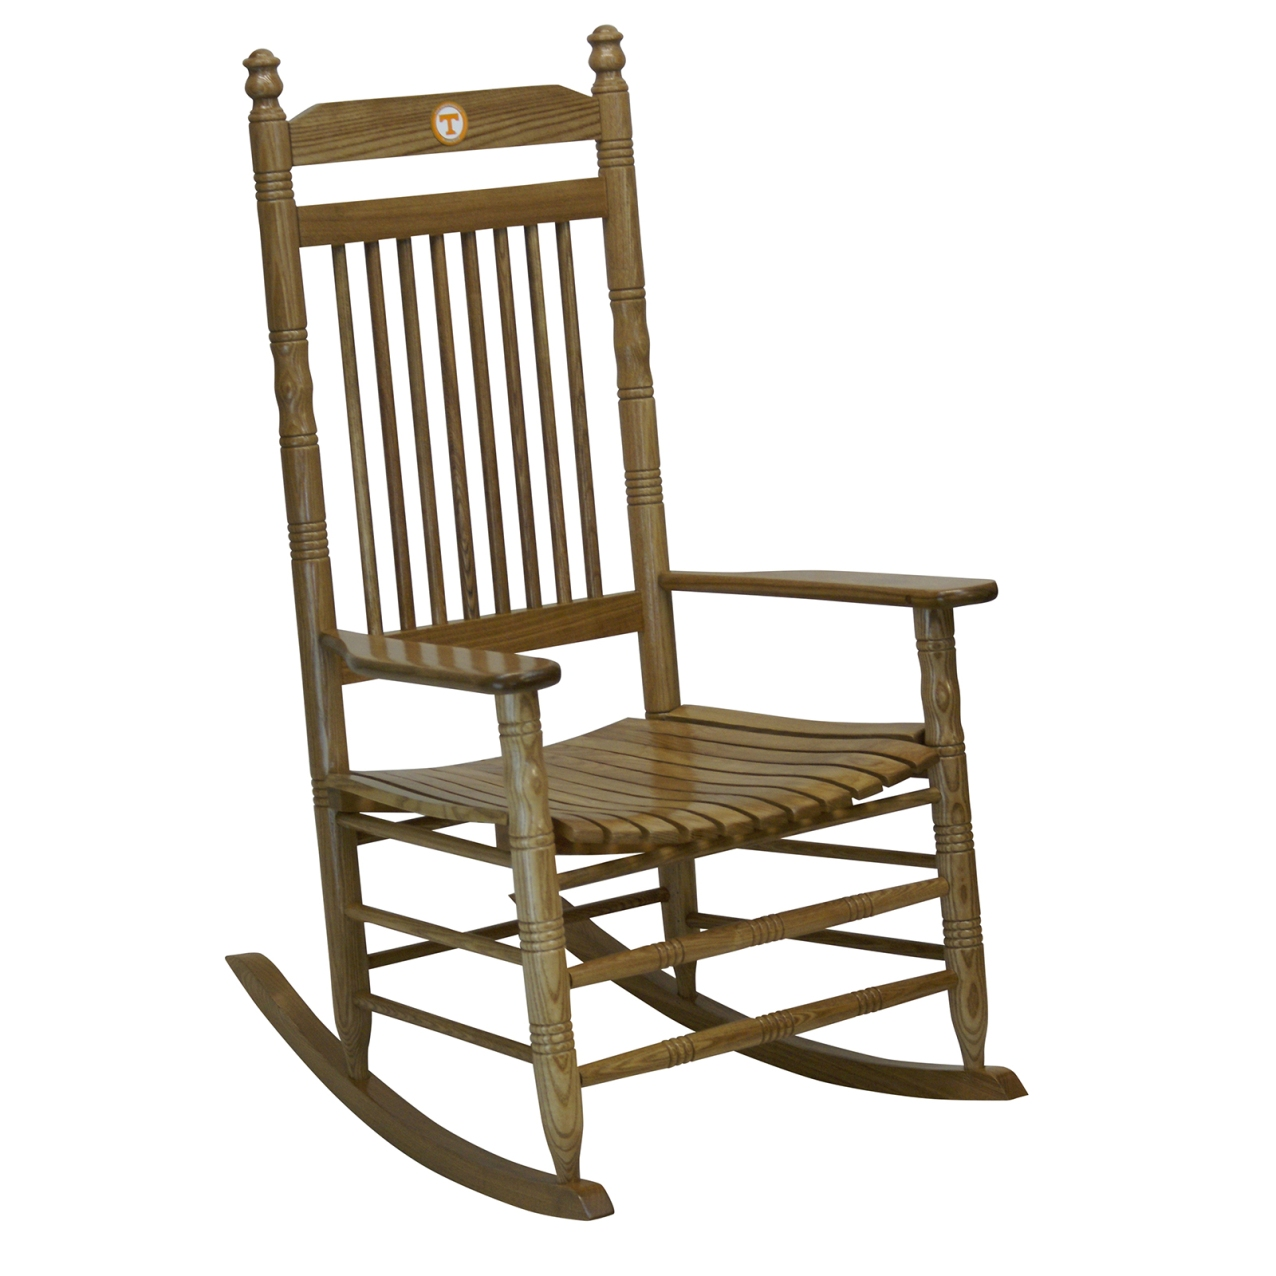 Hardwood Rocking Chair - Tennessee